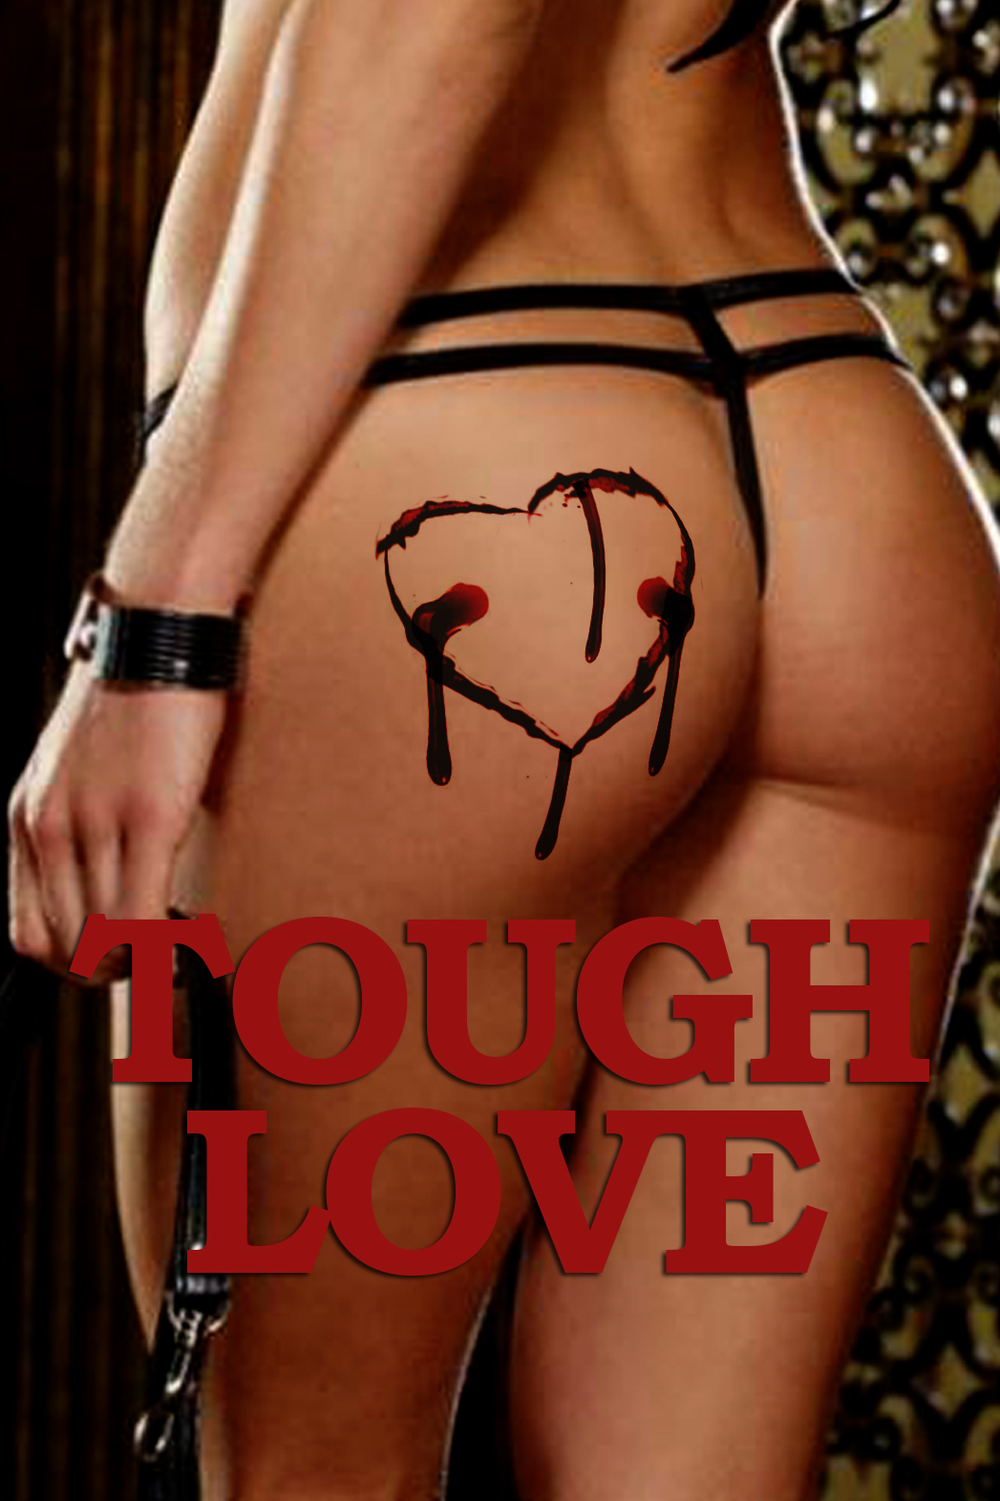 Tough Love Poster.jpg